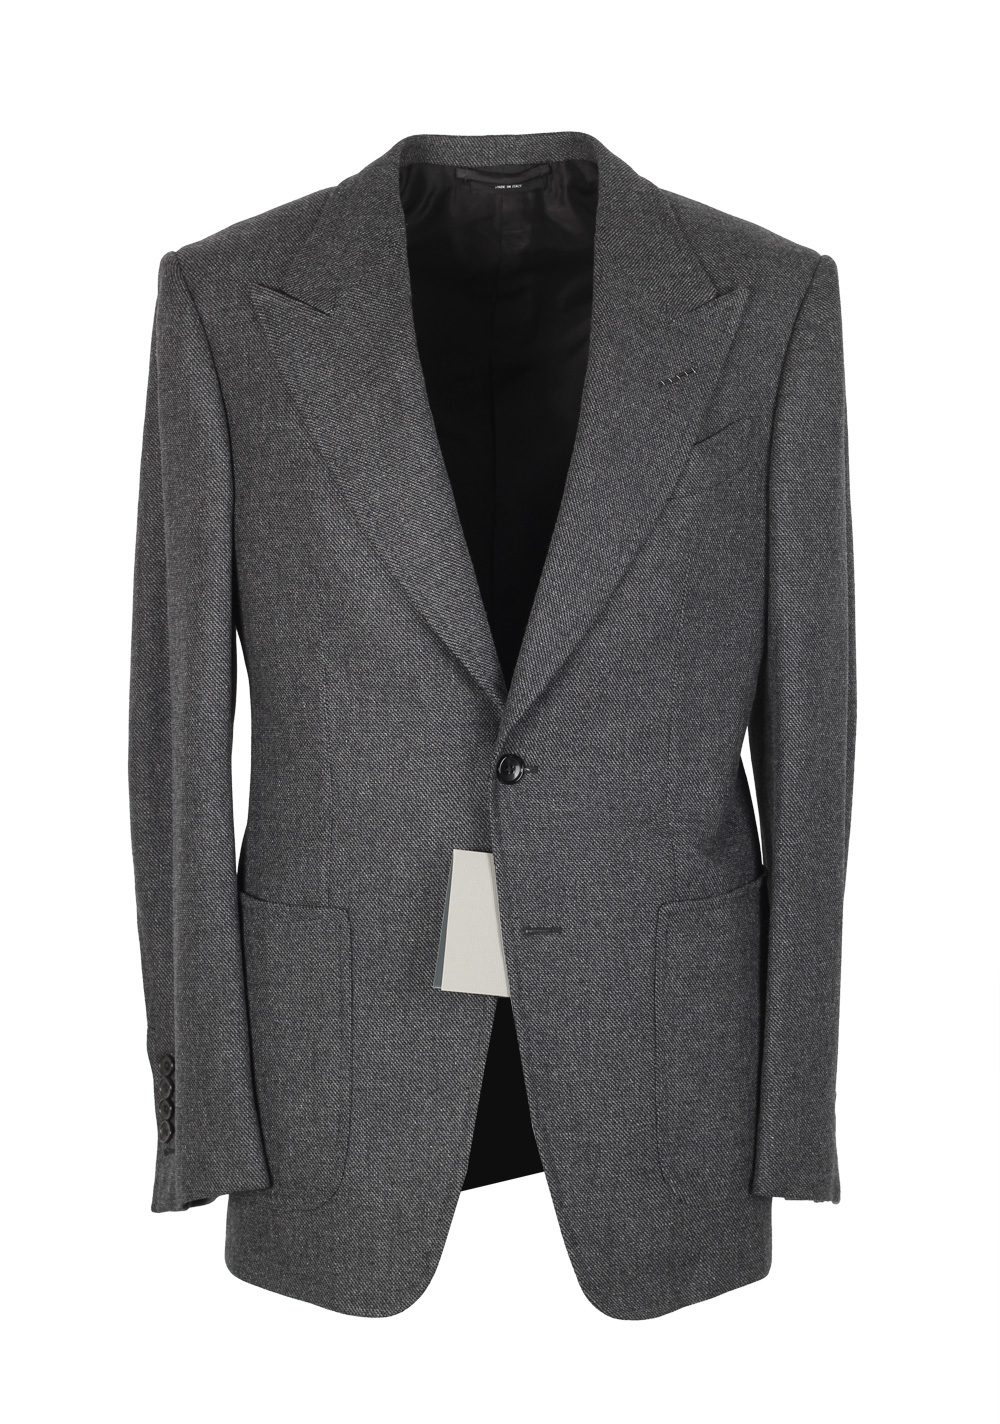 FORD Shelton Gray Sport Coat Size 46 / 36R Wool Cashmere | Costume ...